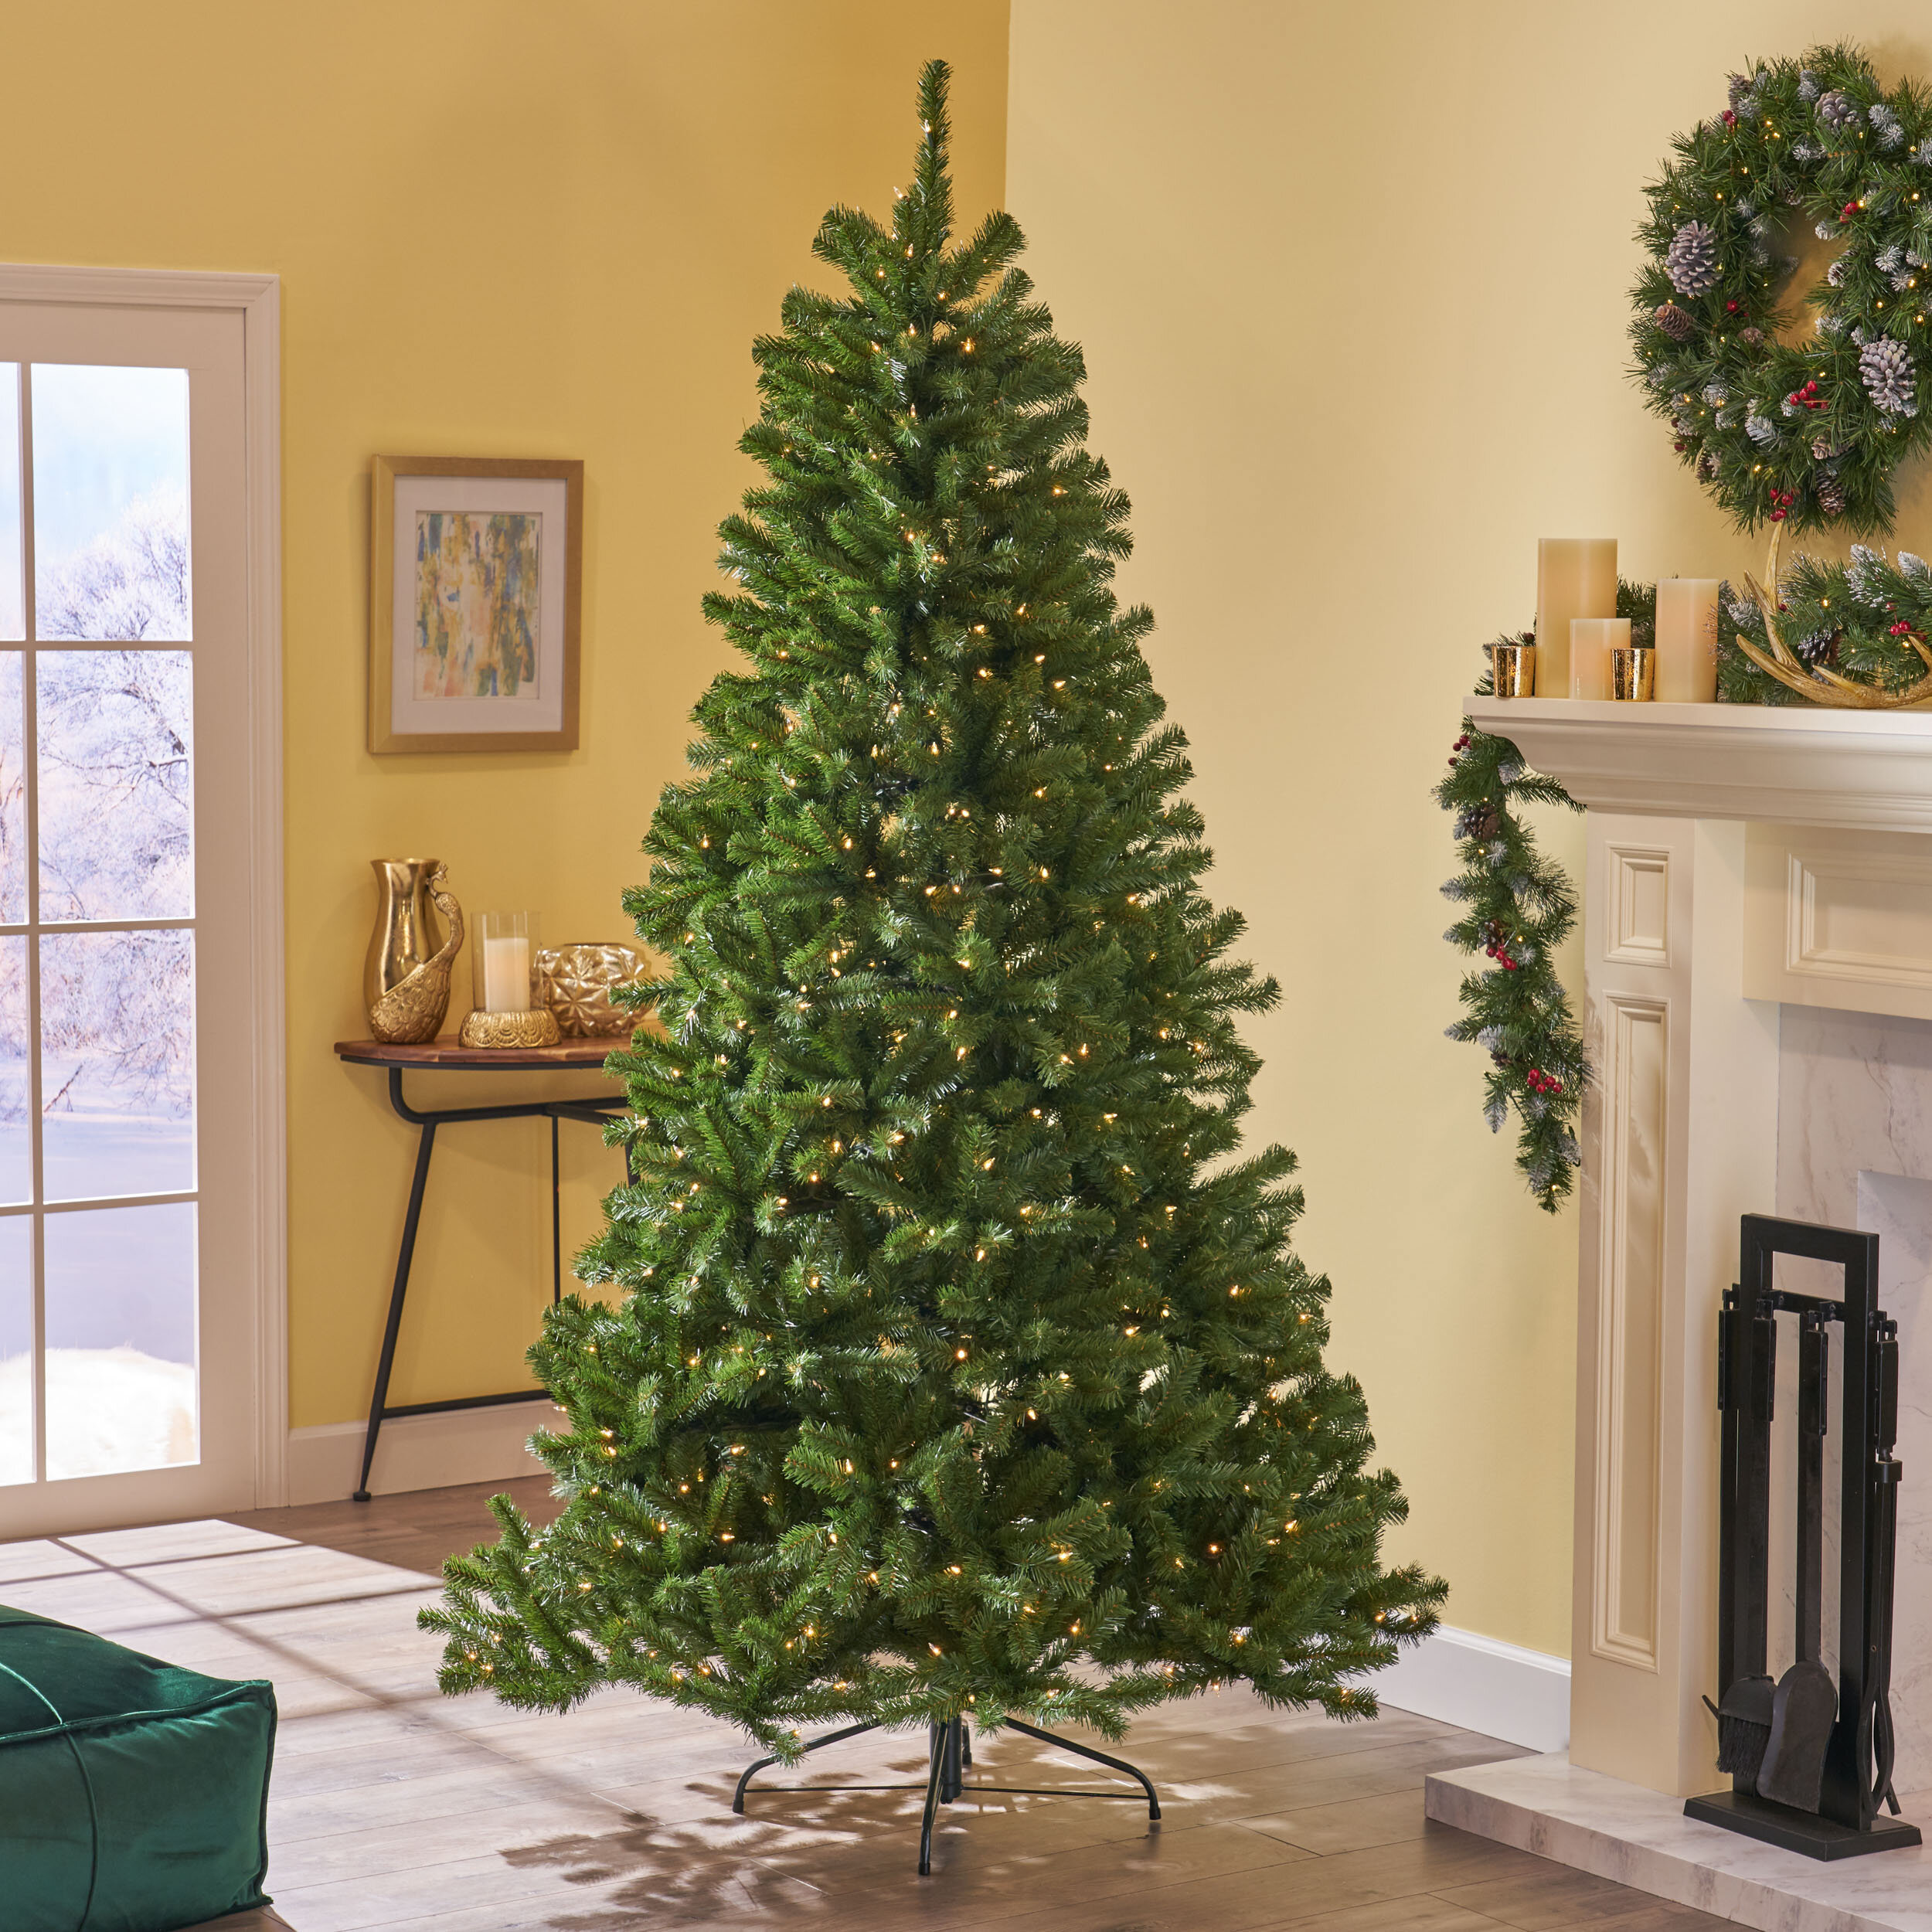 Artificial Christmas Tree With Lights.Green Fir Artificial Christmas Tree With Clear White Lights